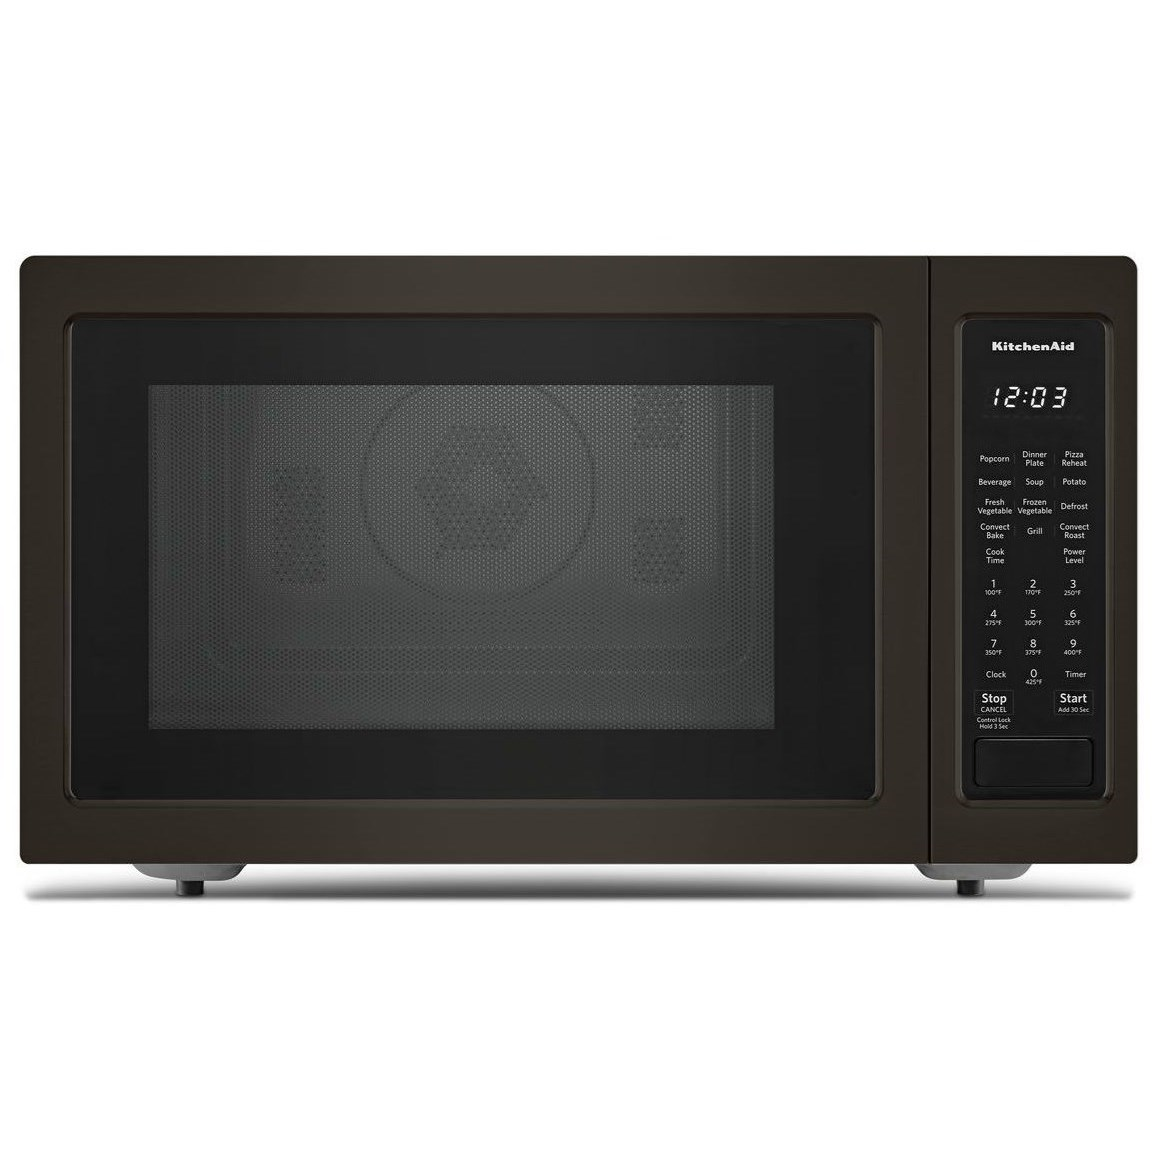 Kitchenaid Microwaves 21 3 4 Countertop Convection Microwave Oven Item Number